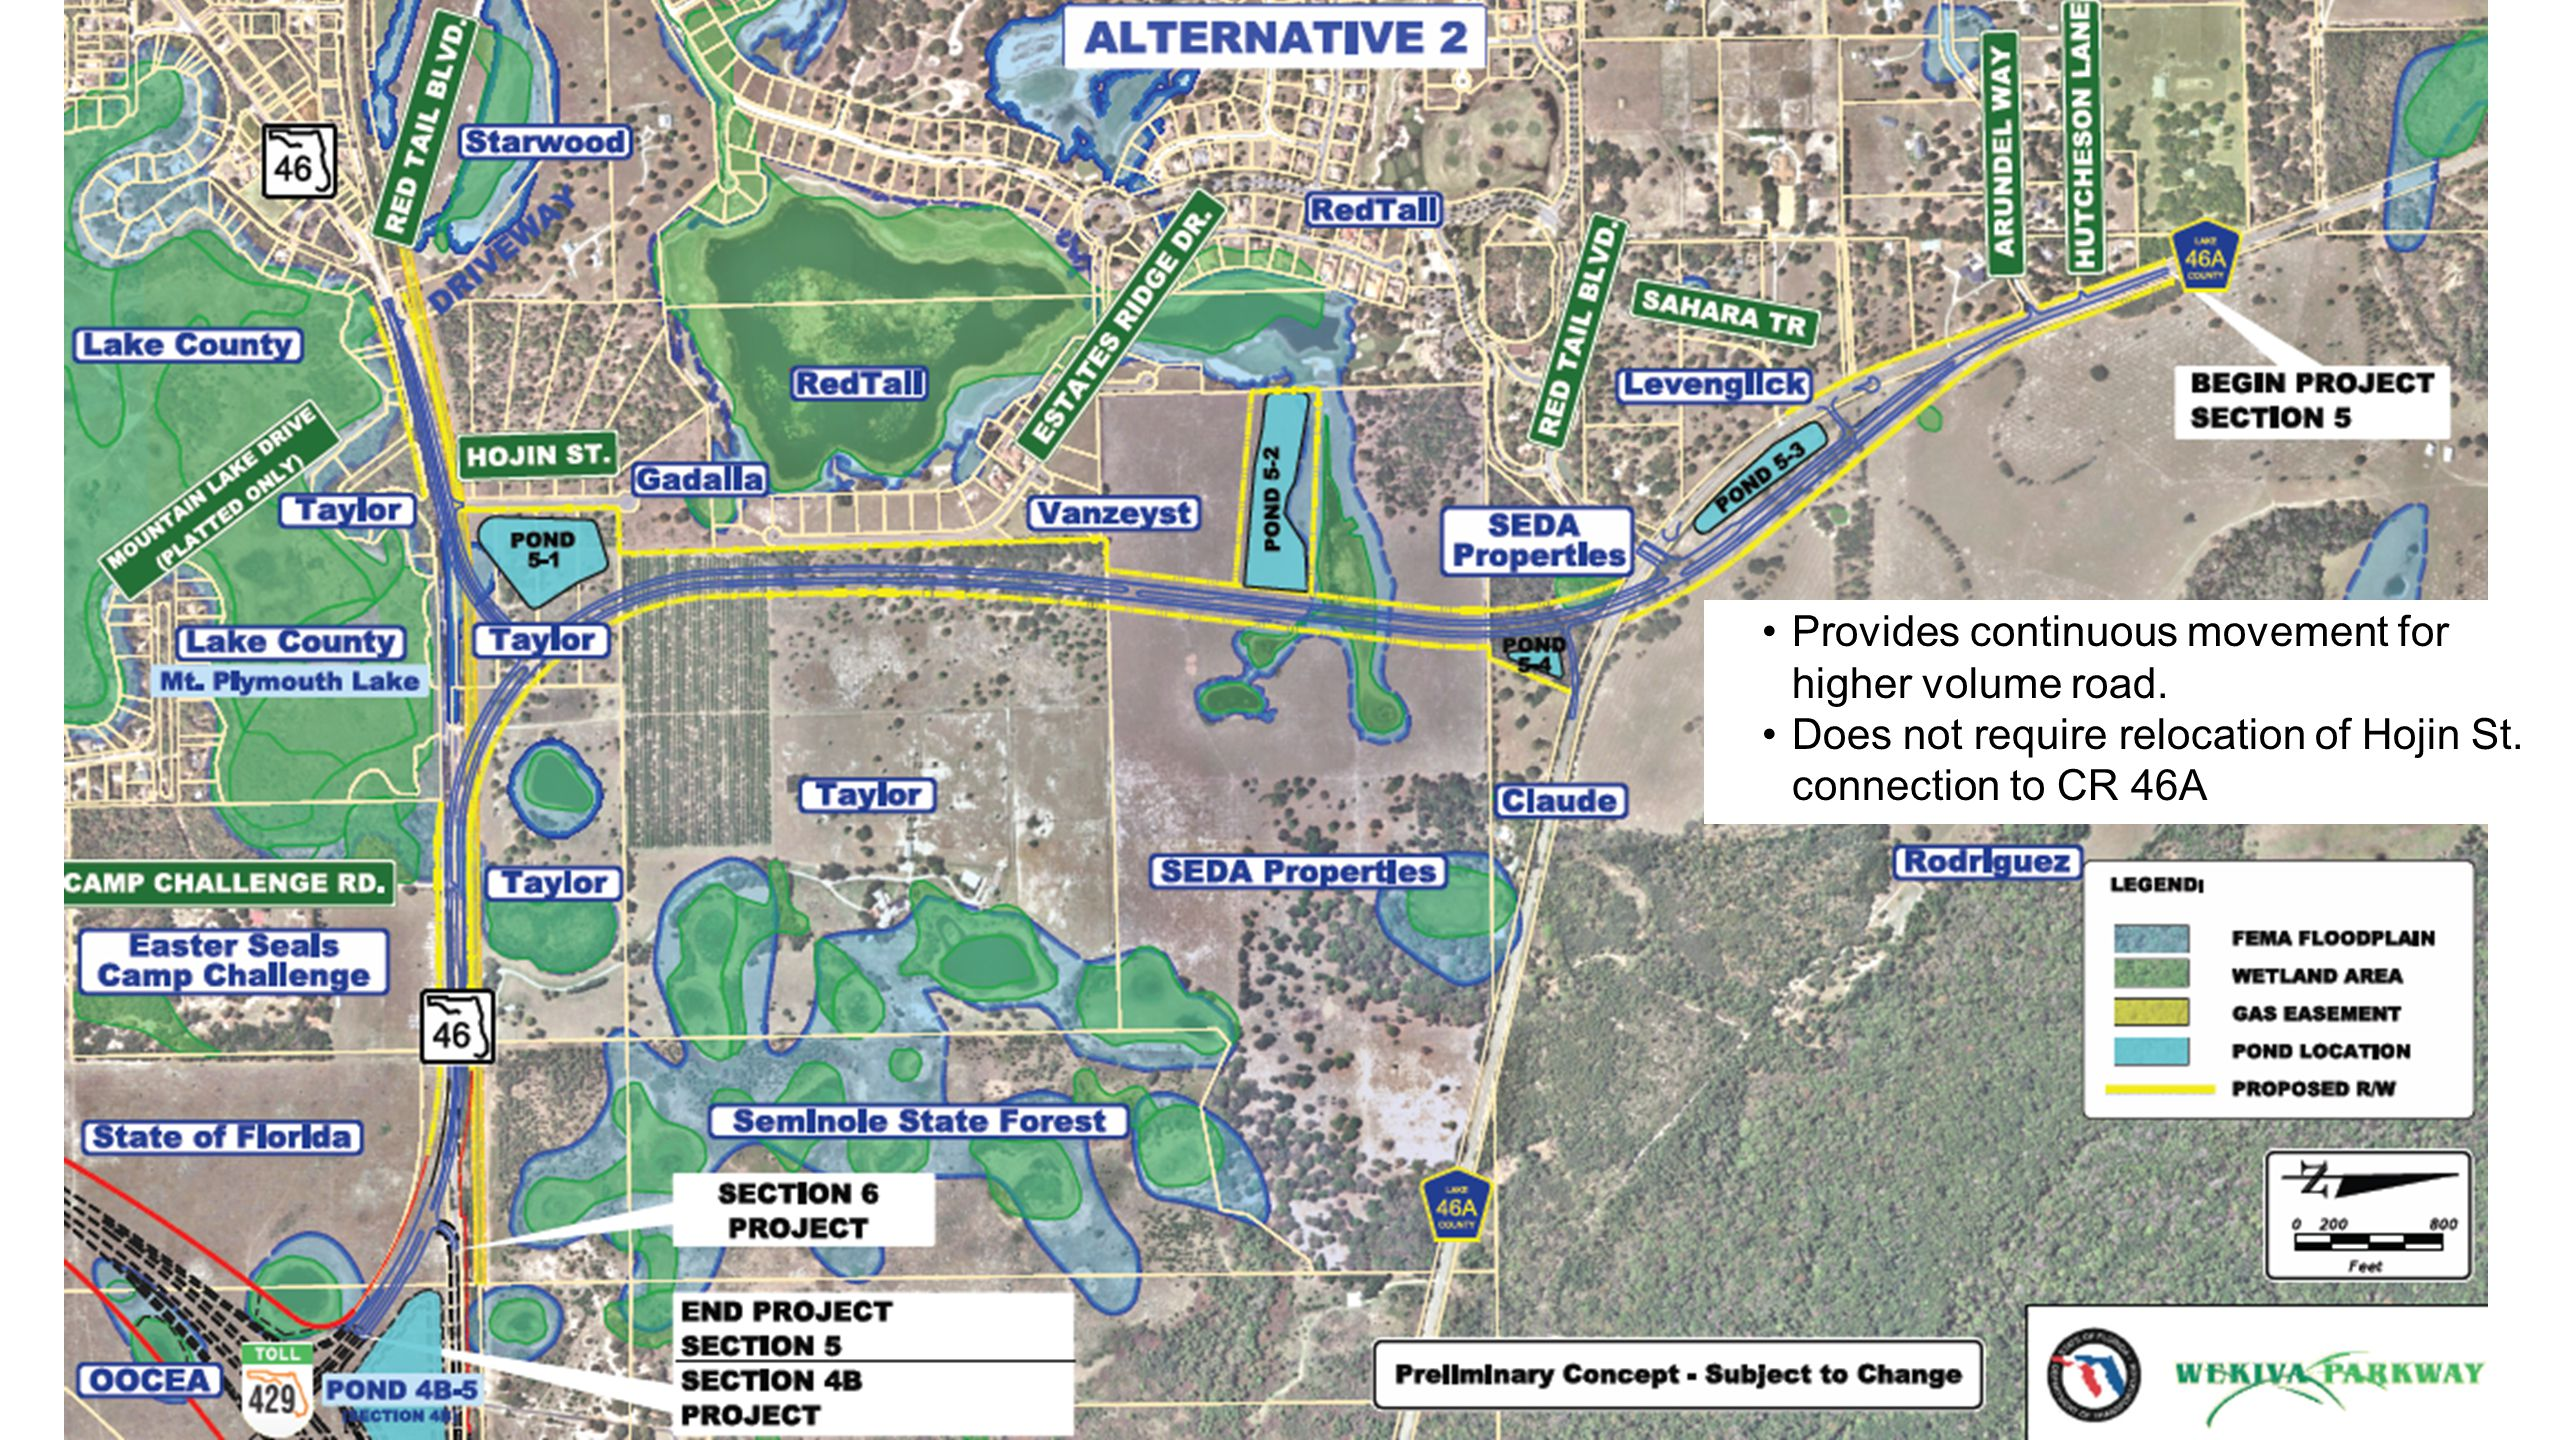 OOCEA SECTIONS Alignment Alternative 3